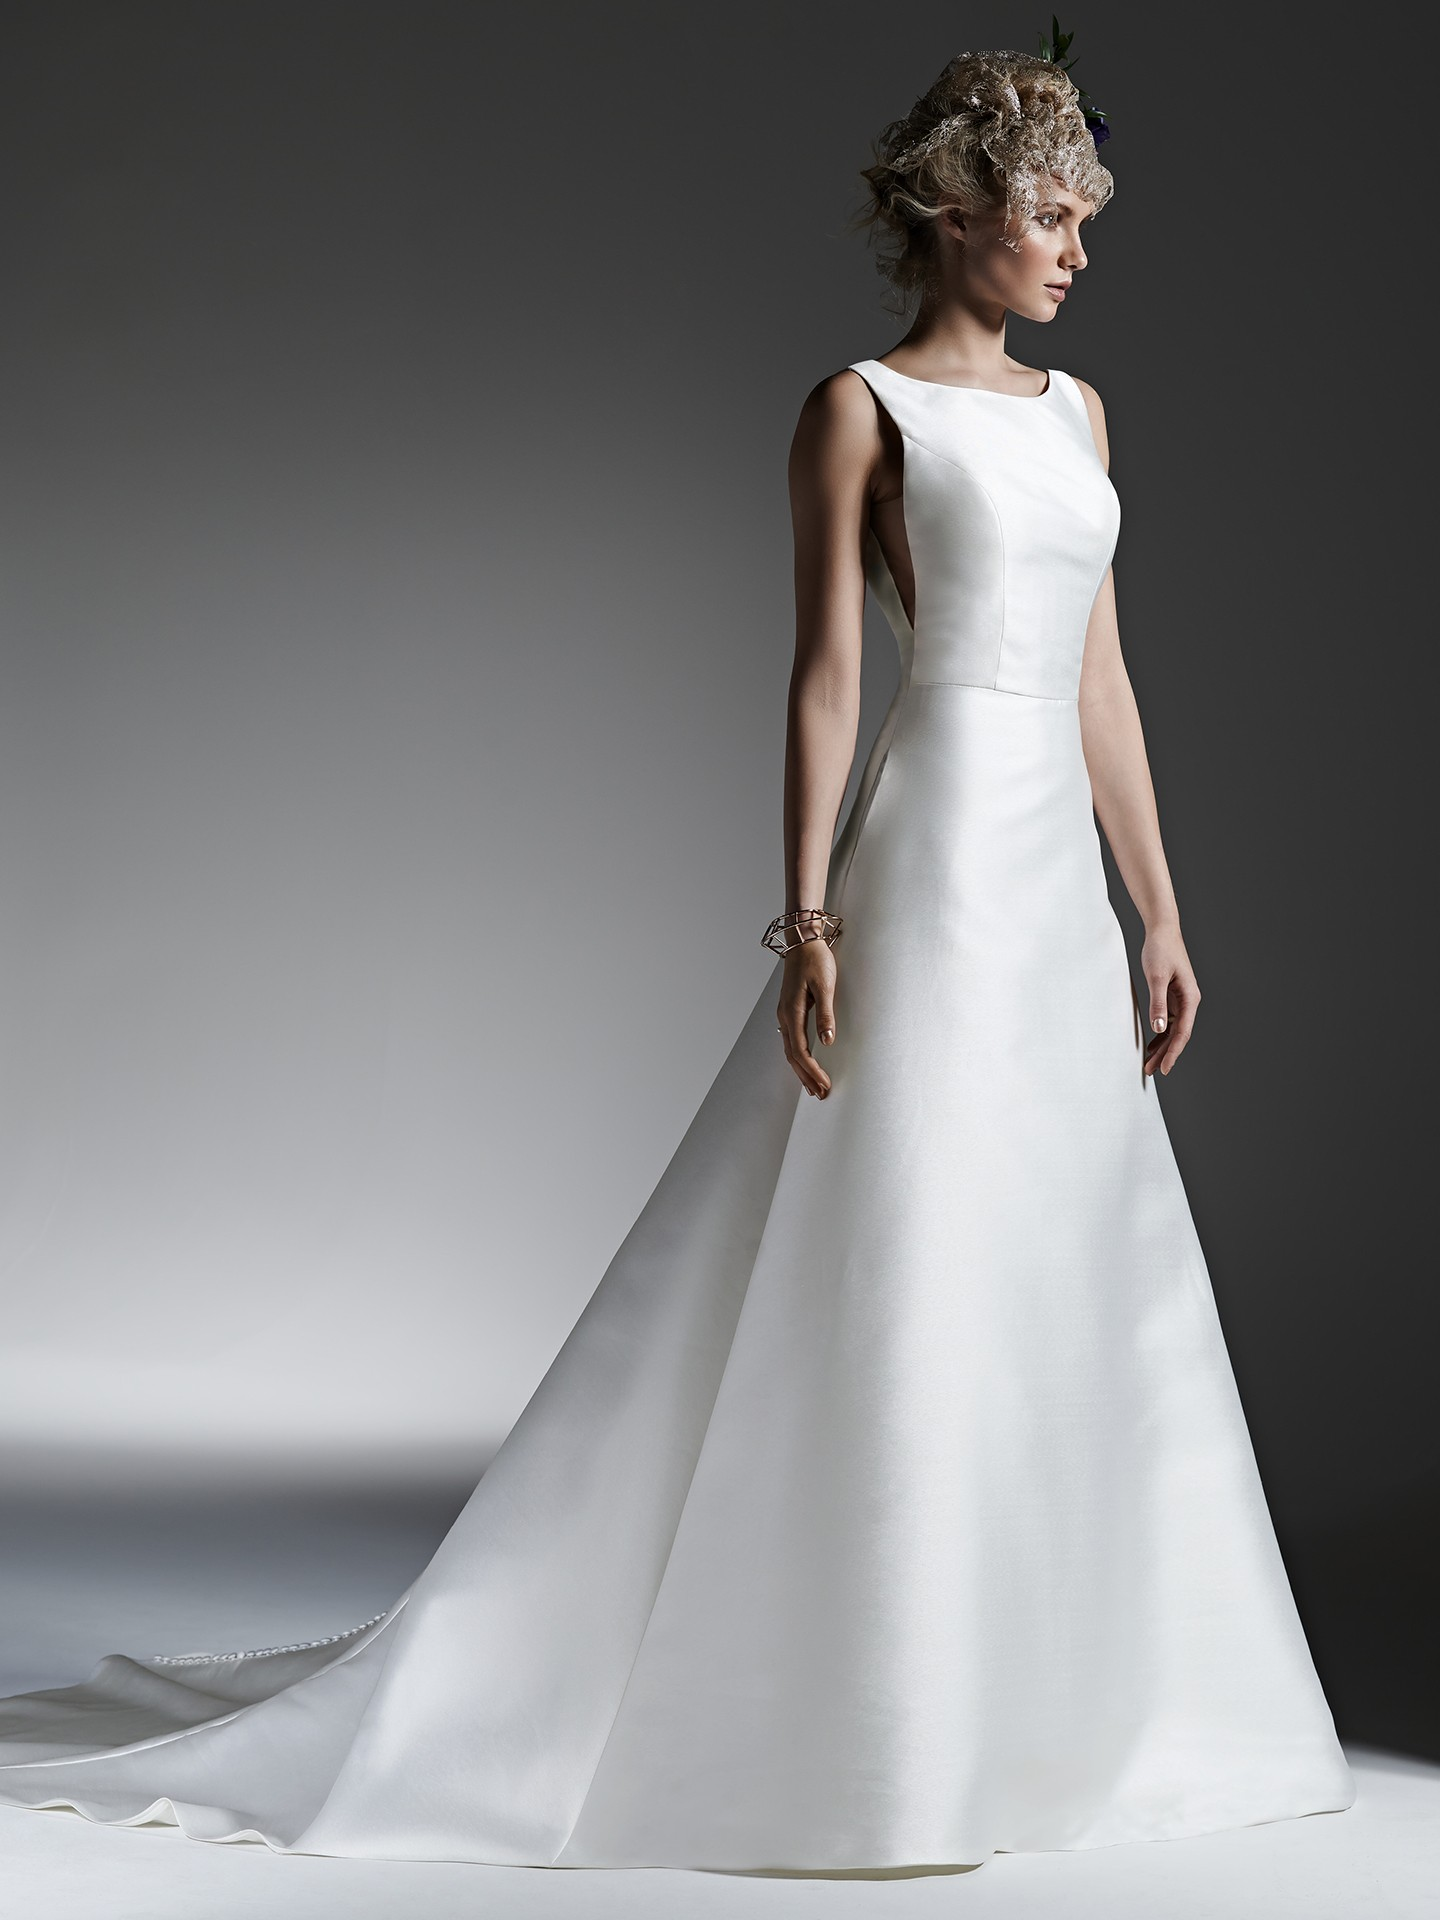 A Stunning Gown for the Minimalist Bride - McCall by Sottero and Midgley